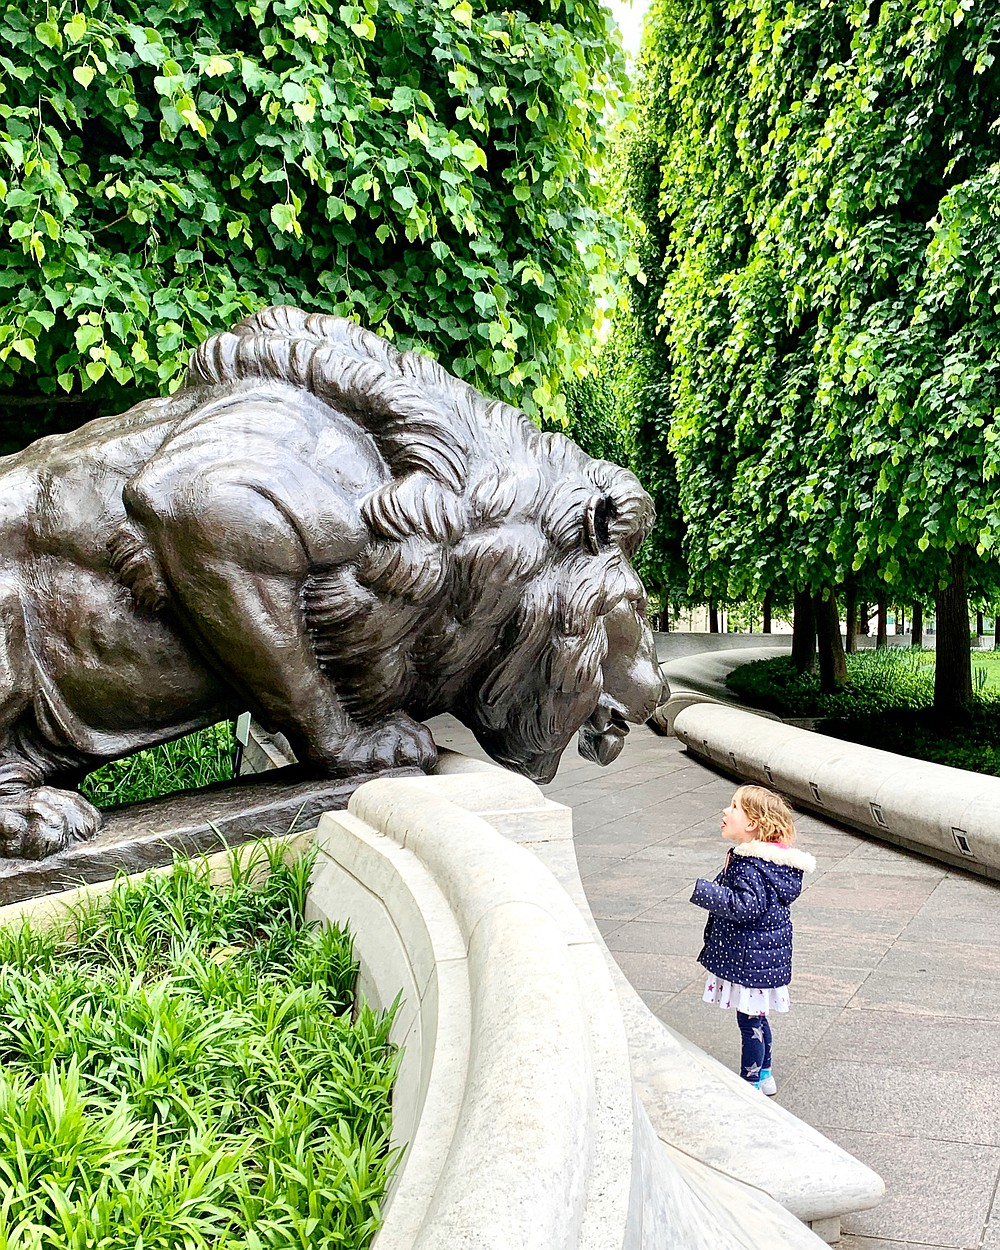 Adelynn Graff stares at one of the lion statues that are part of the National Law Enforcement Officers Memorial in Judiciary Square. (The Washington Post/Austin Graff)